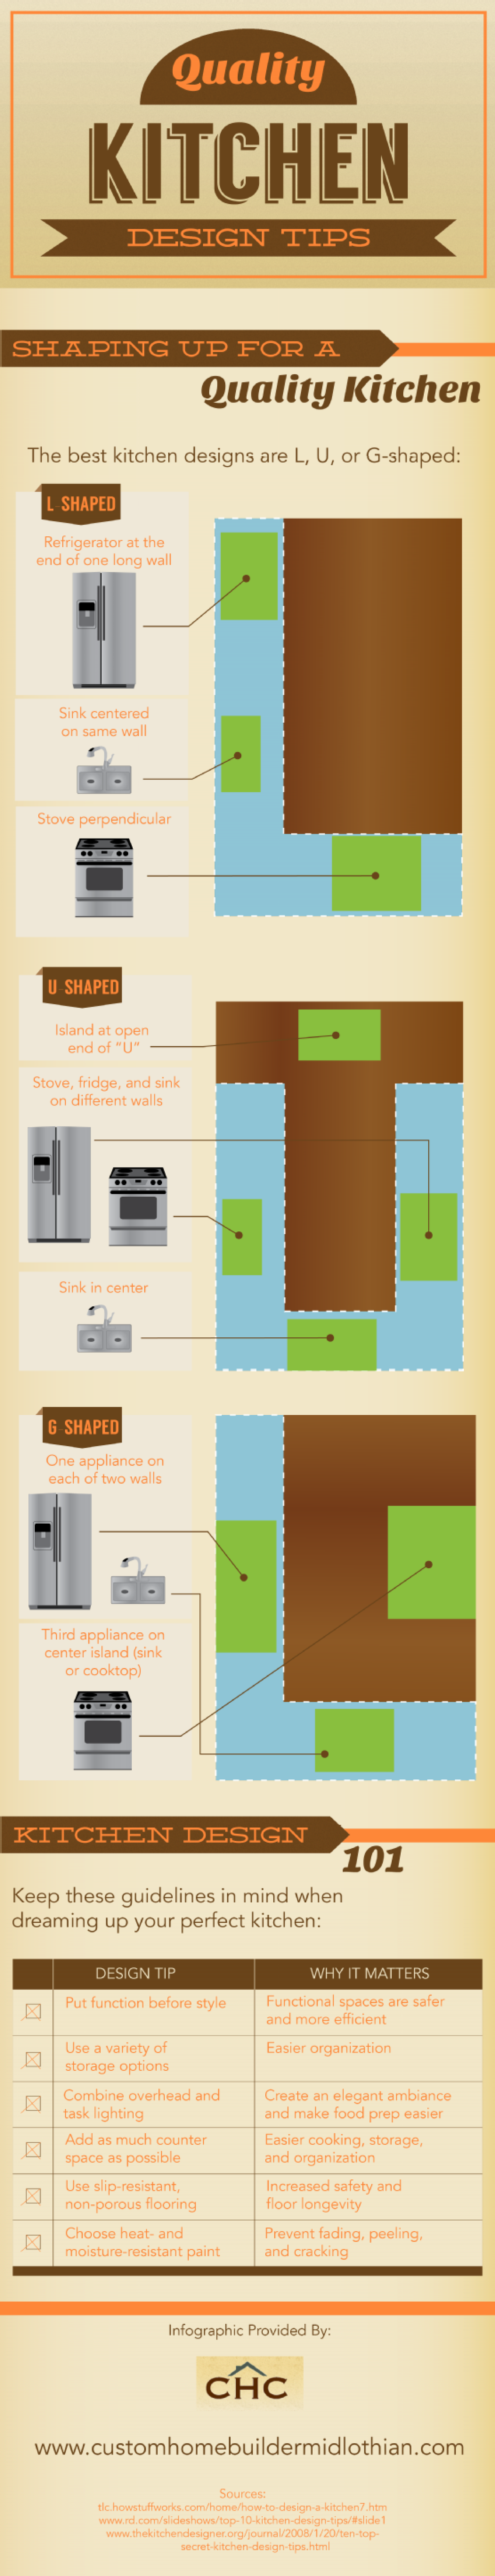 Quality Kitchen Design Tips Infographic